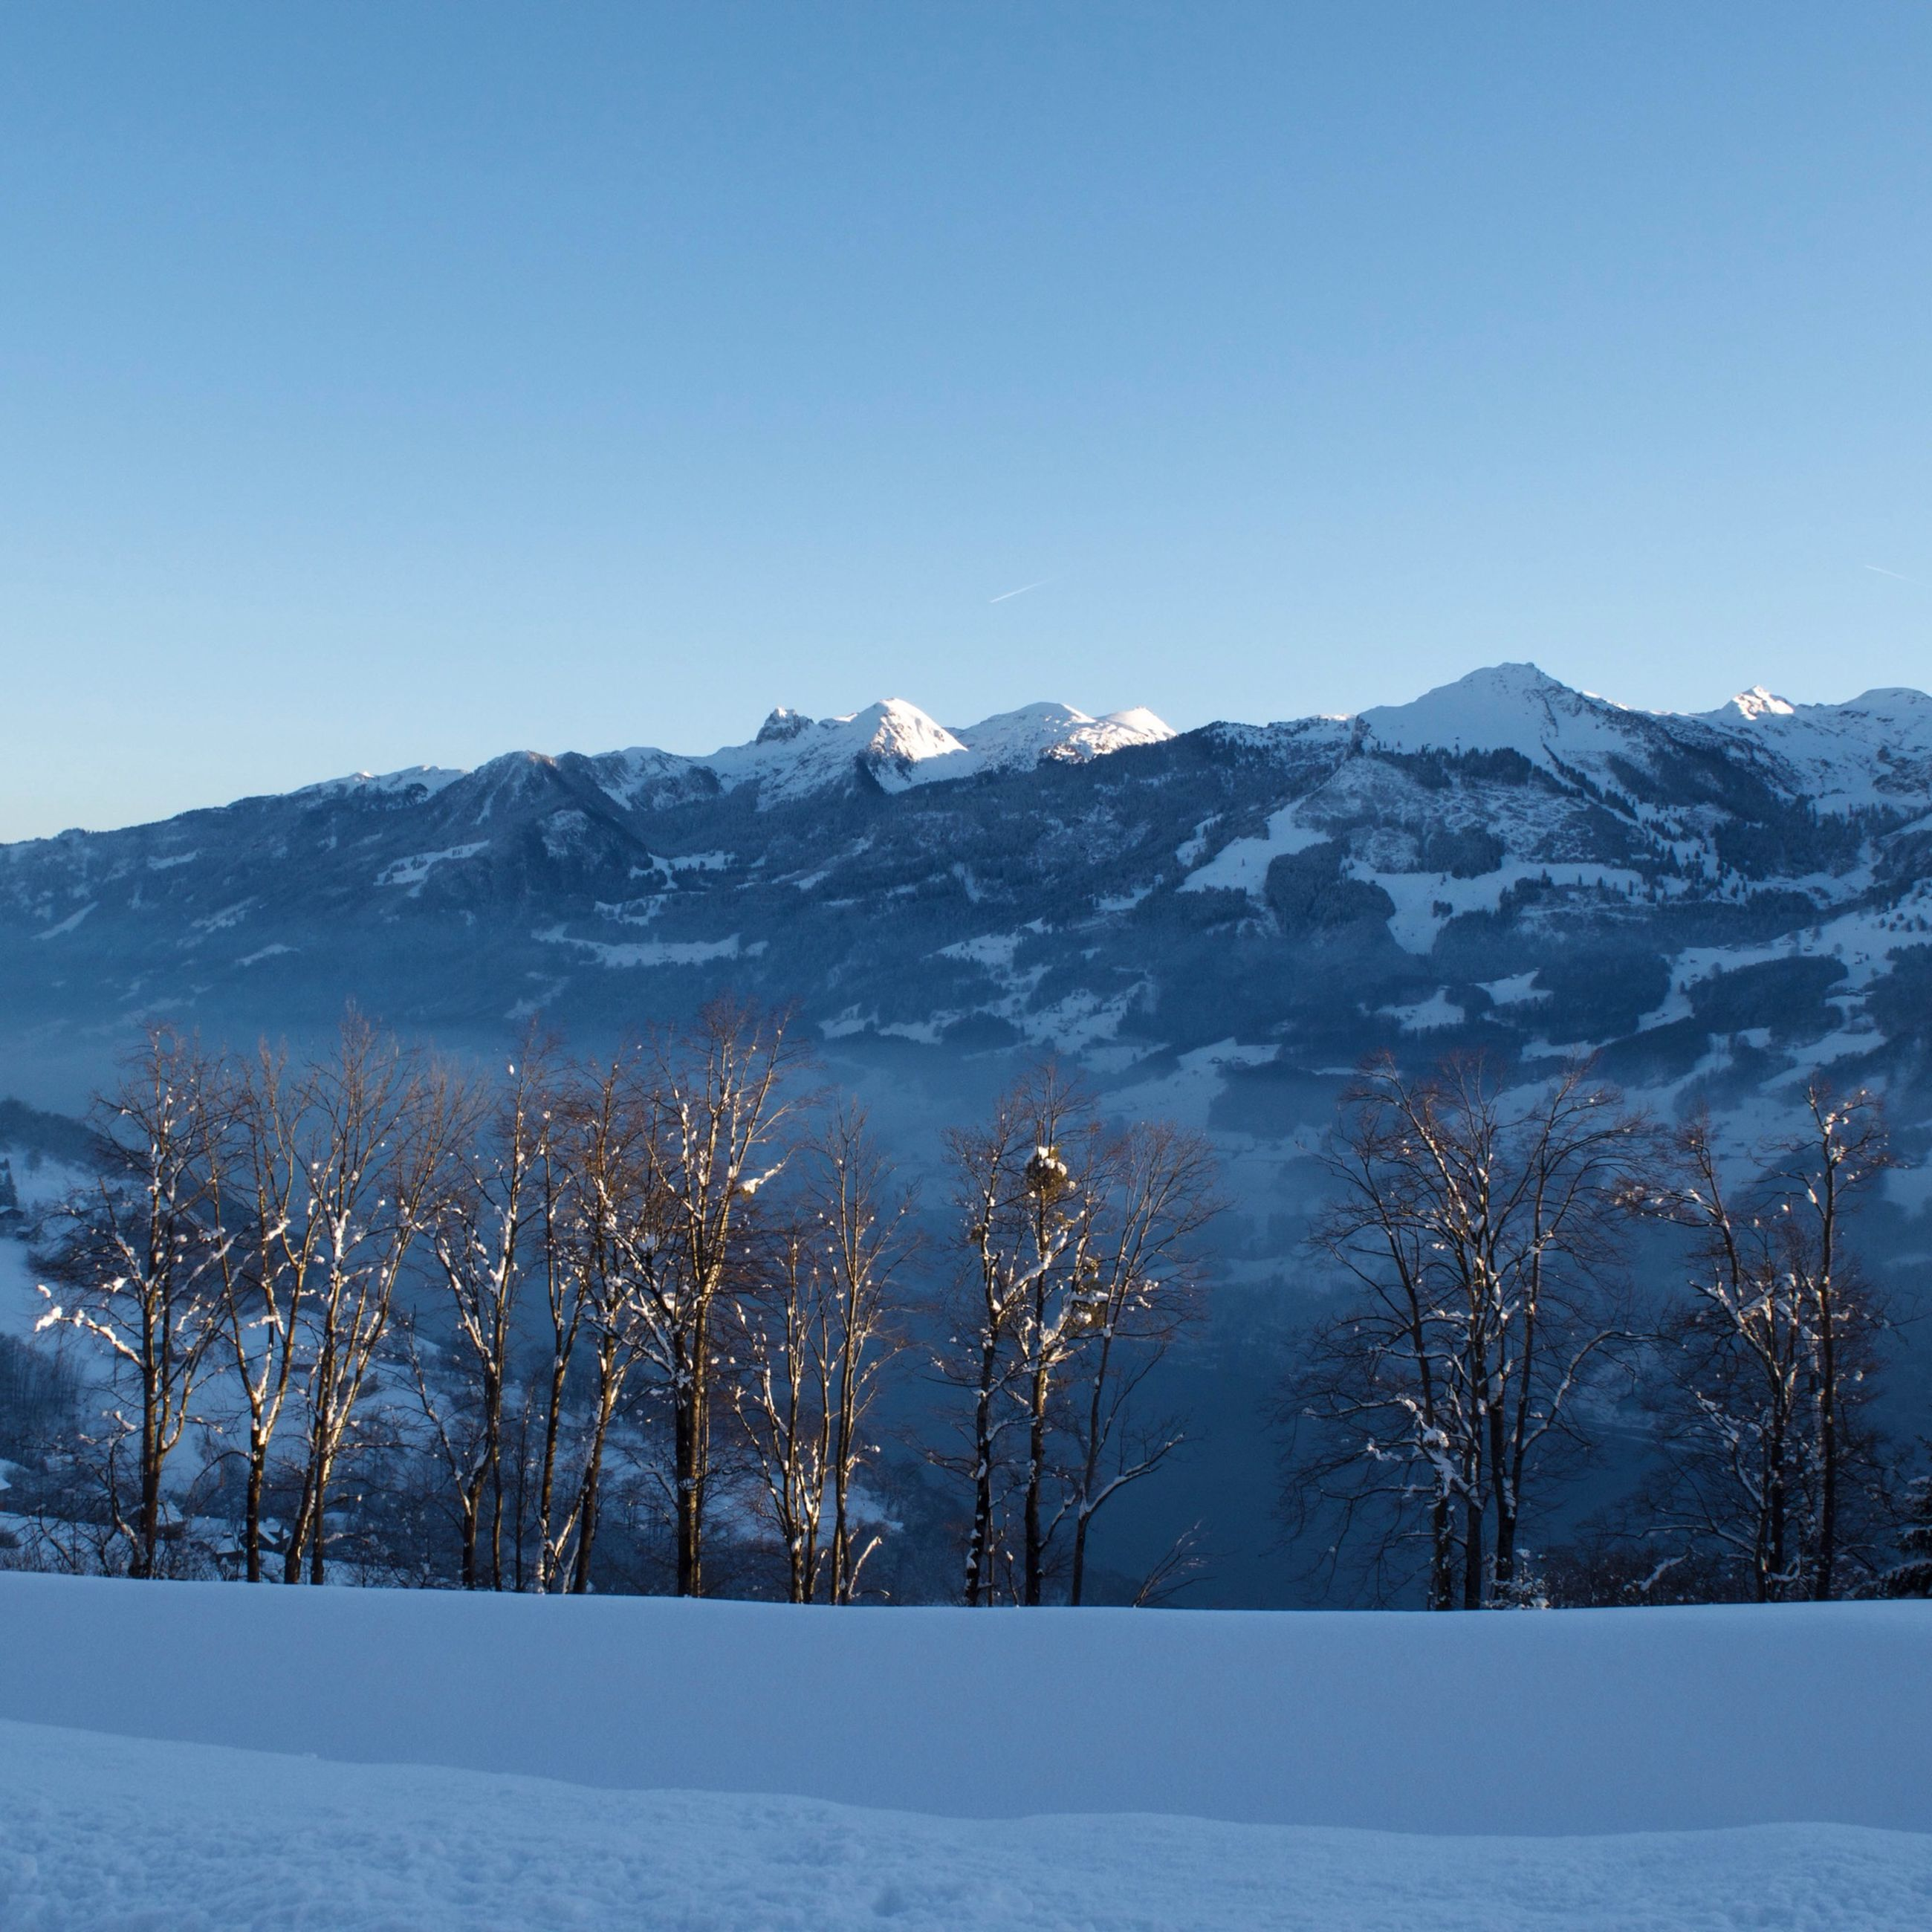 snow, winter, cold temperature, clear sky, season, tranquil scene, tranquility, mountain, copy space, landscape, scenics, beauty in nature, weather, nature, covering, blue, snowcapped mountain, mountain range, tree, non-urban scene